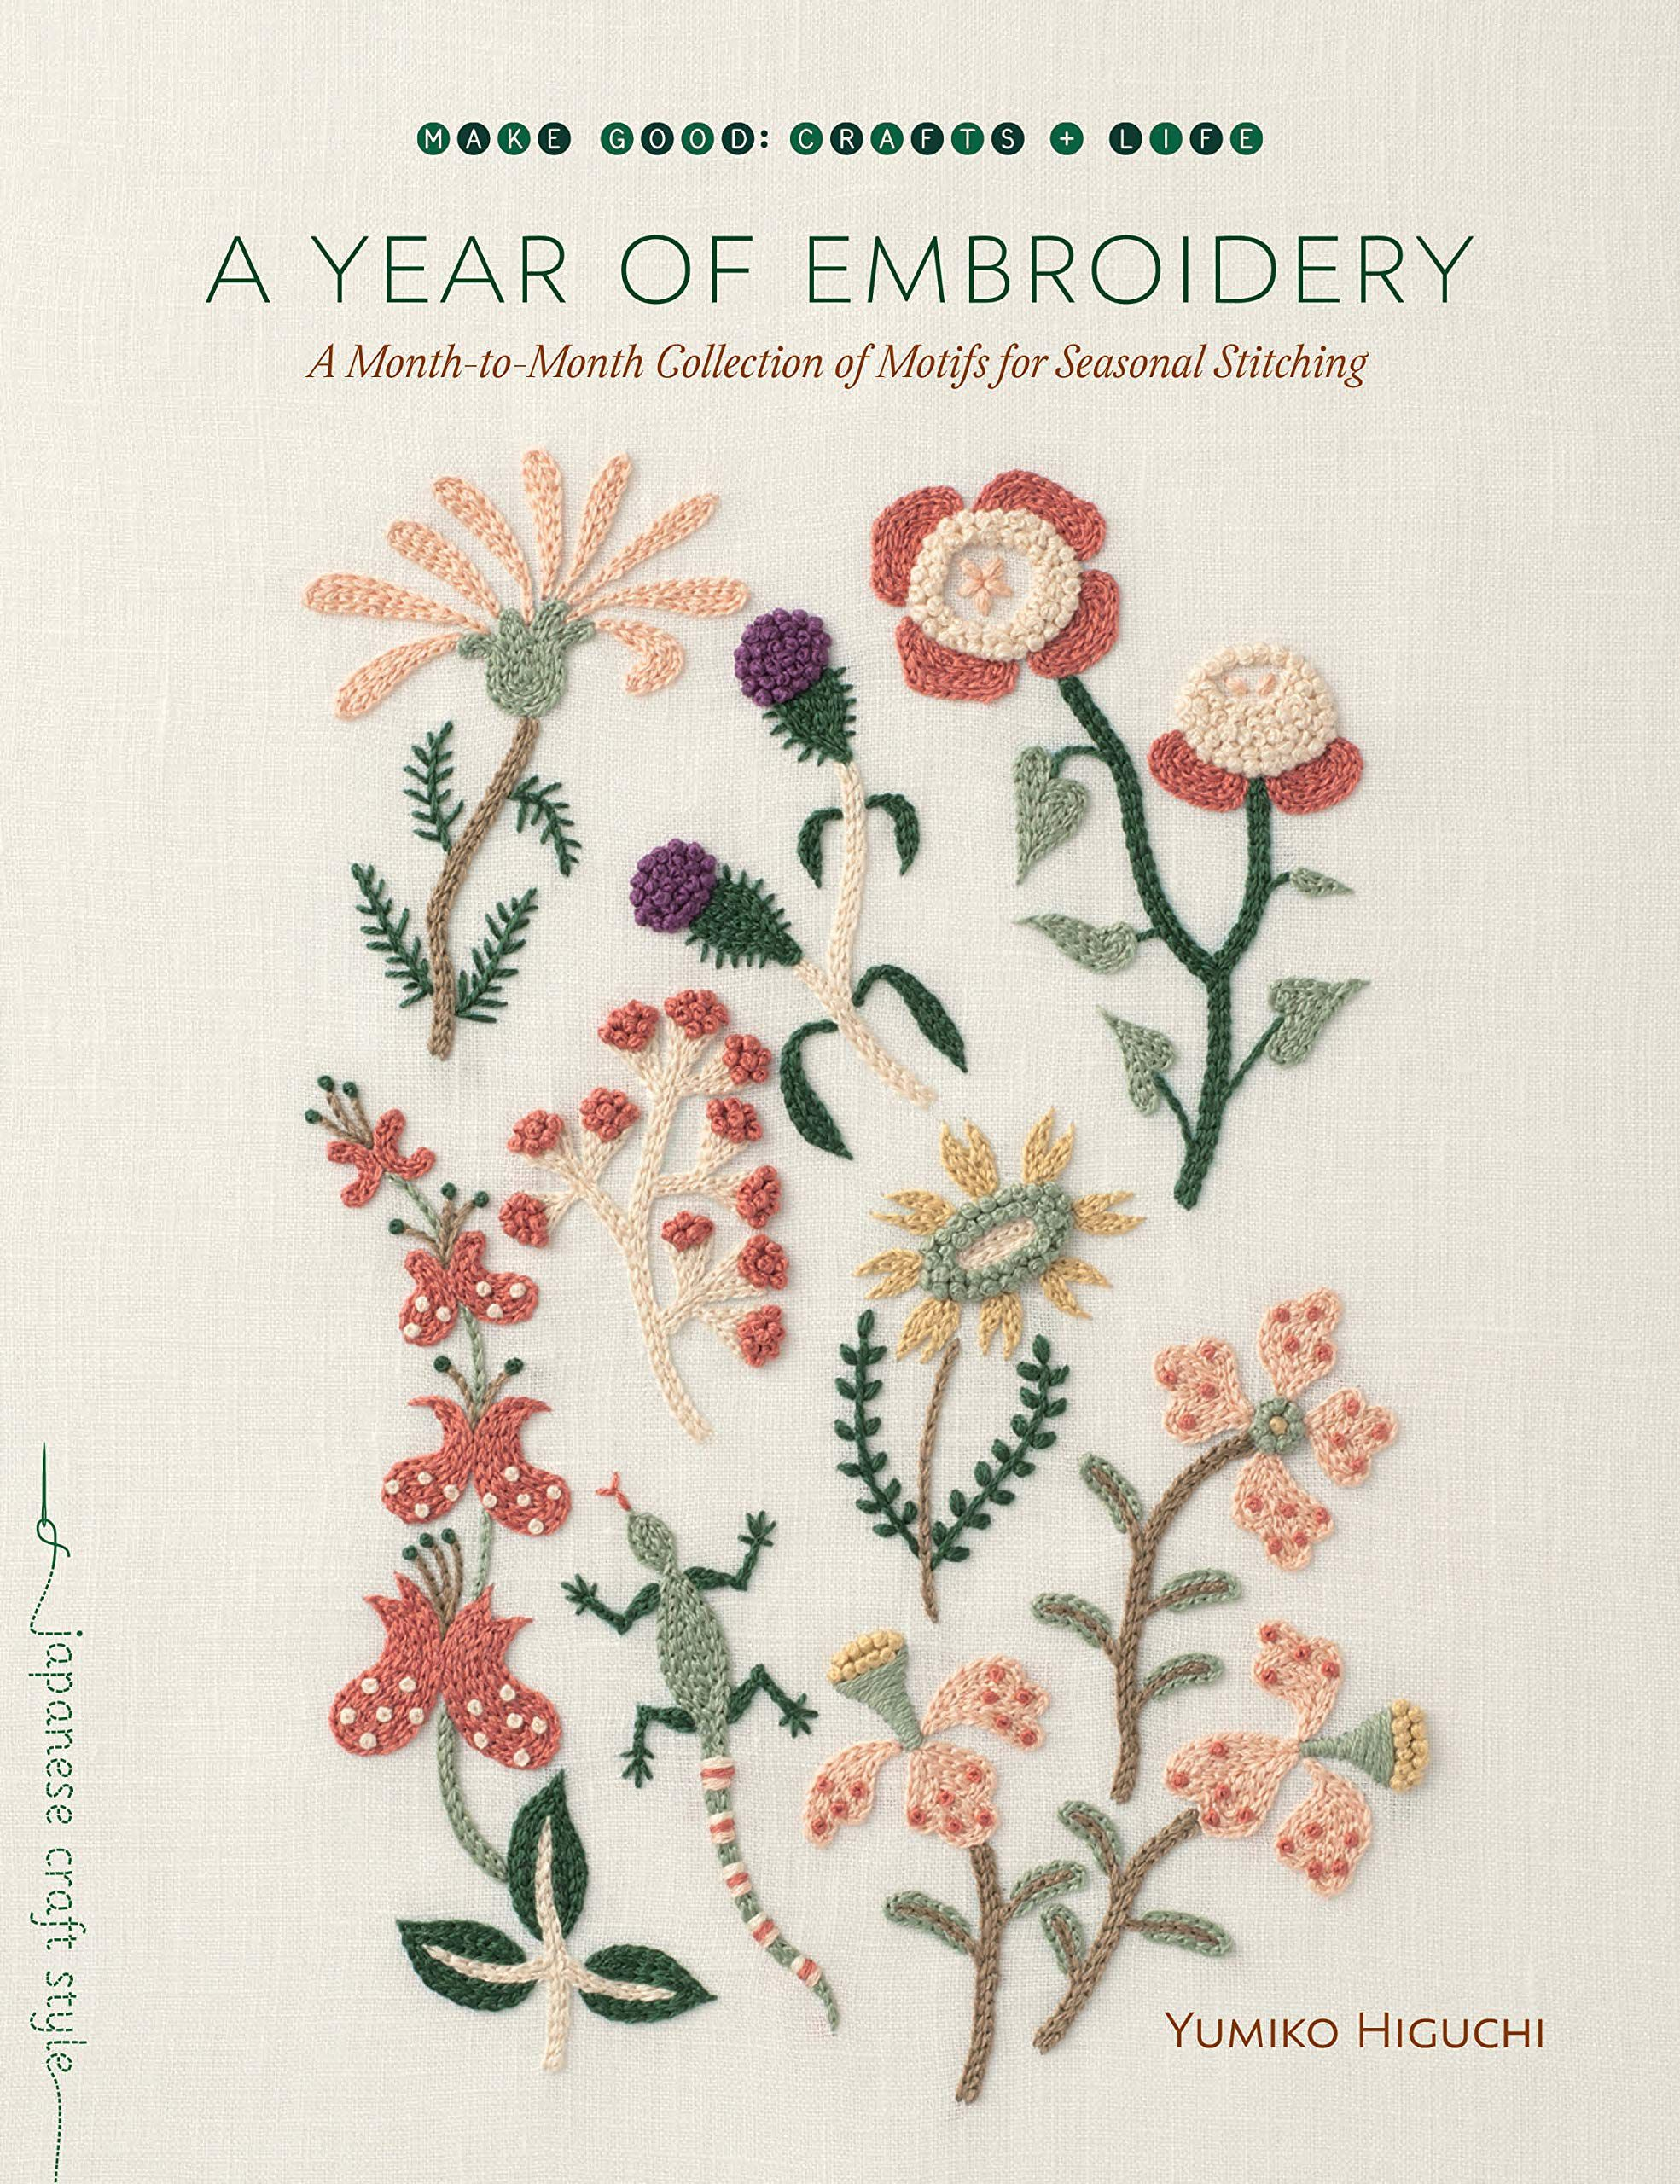 Book cover image of A Year of Embroidery